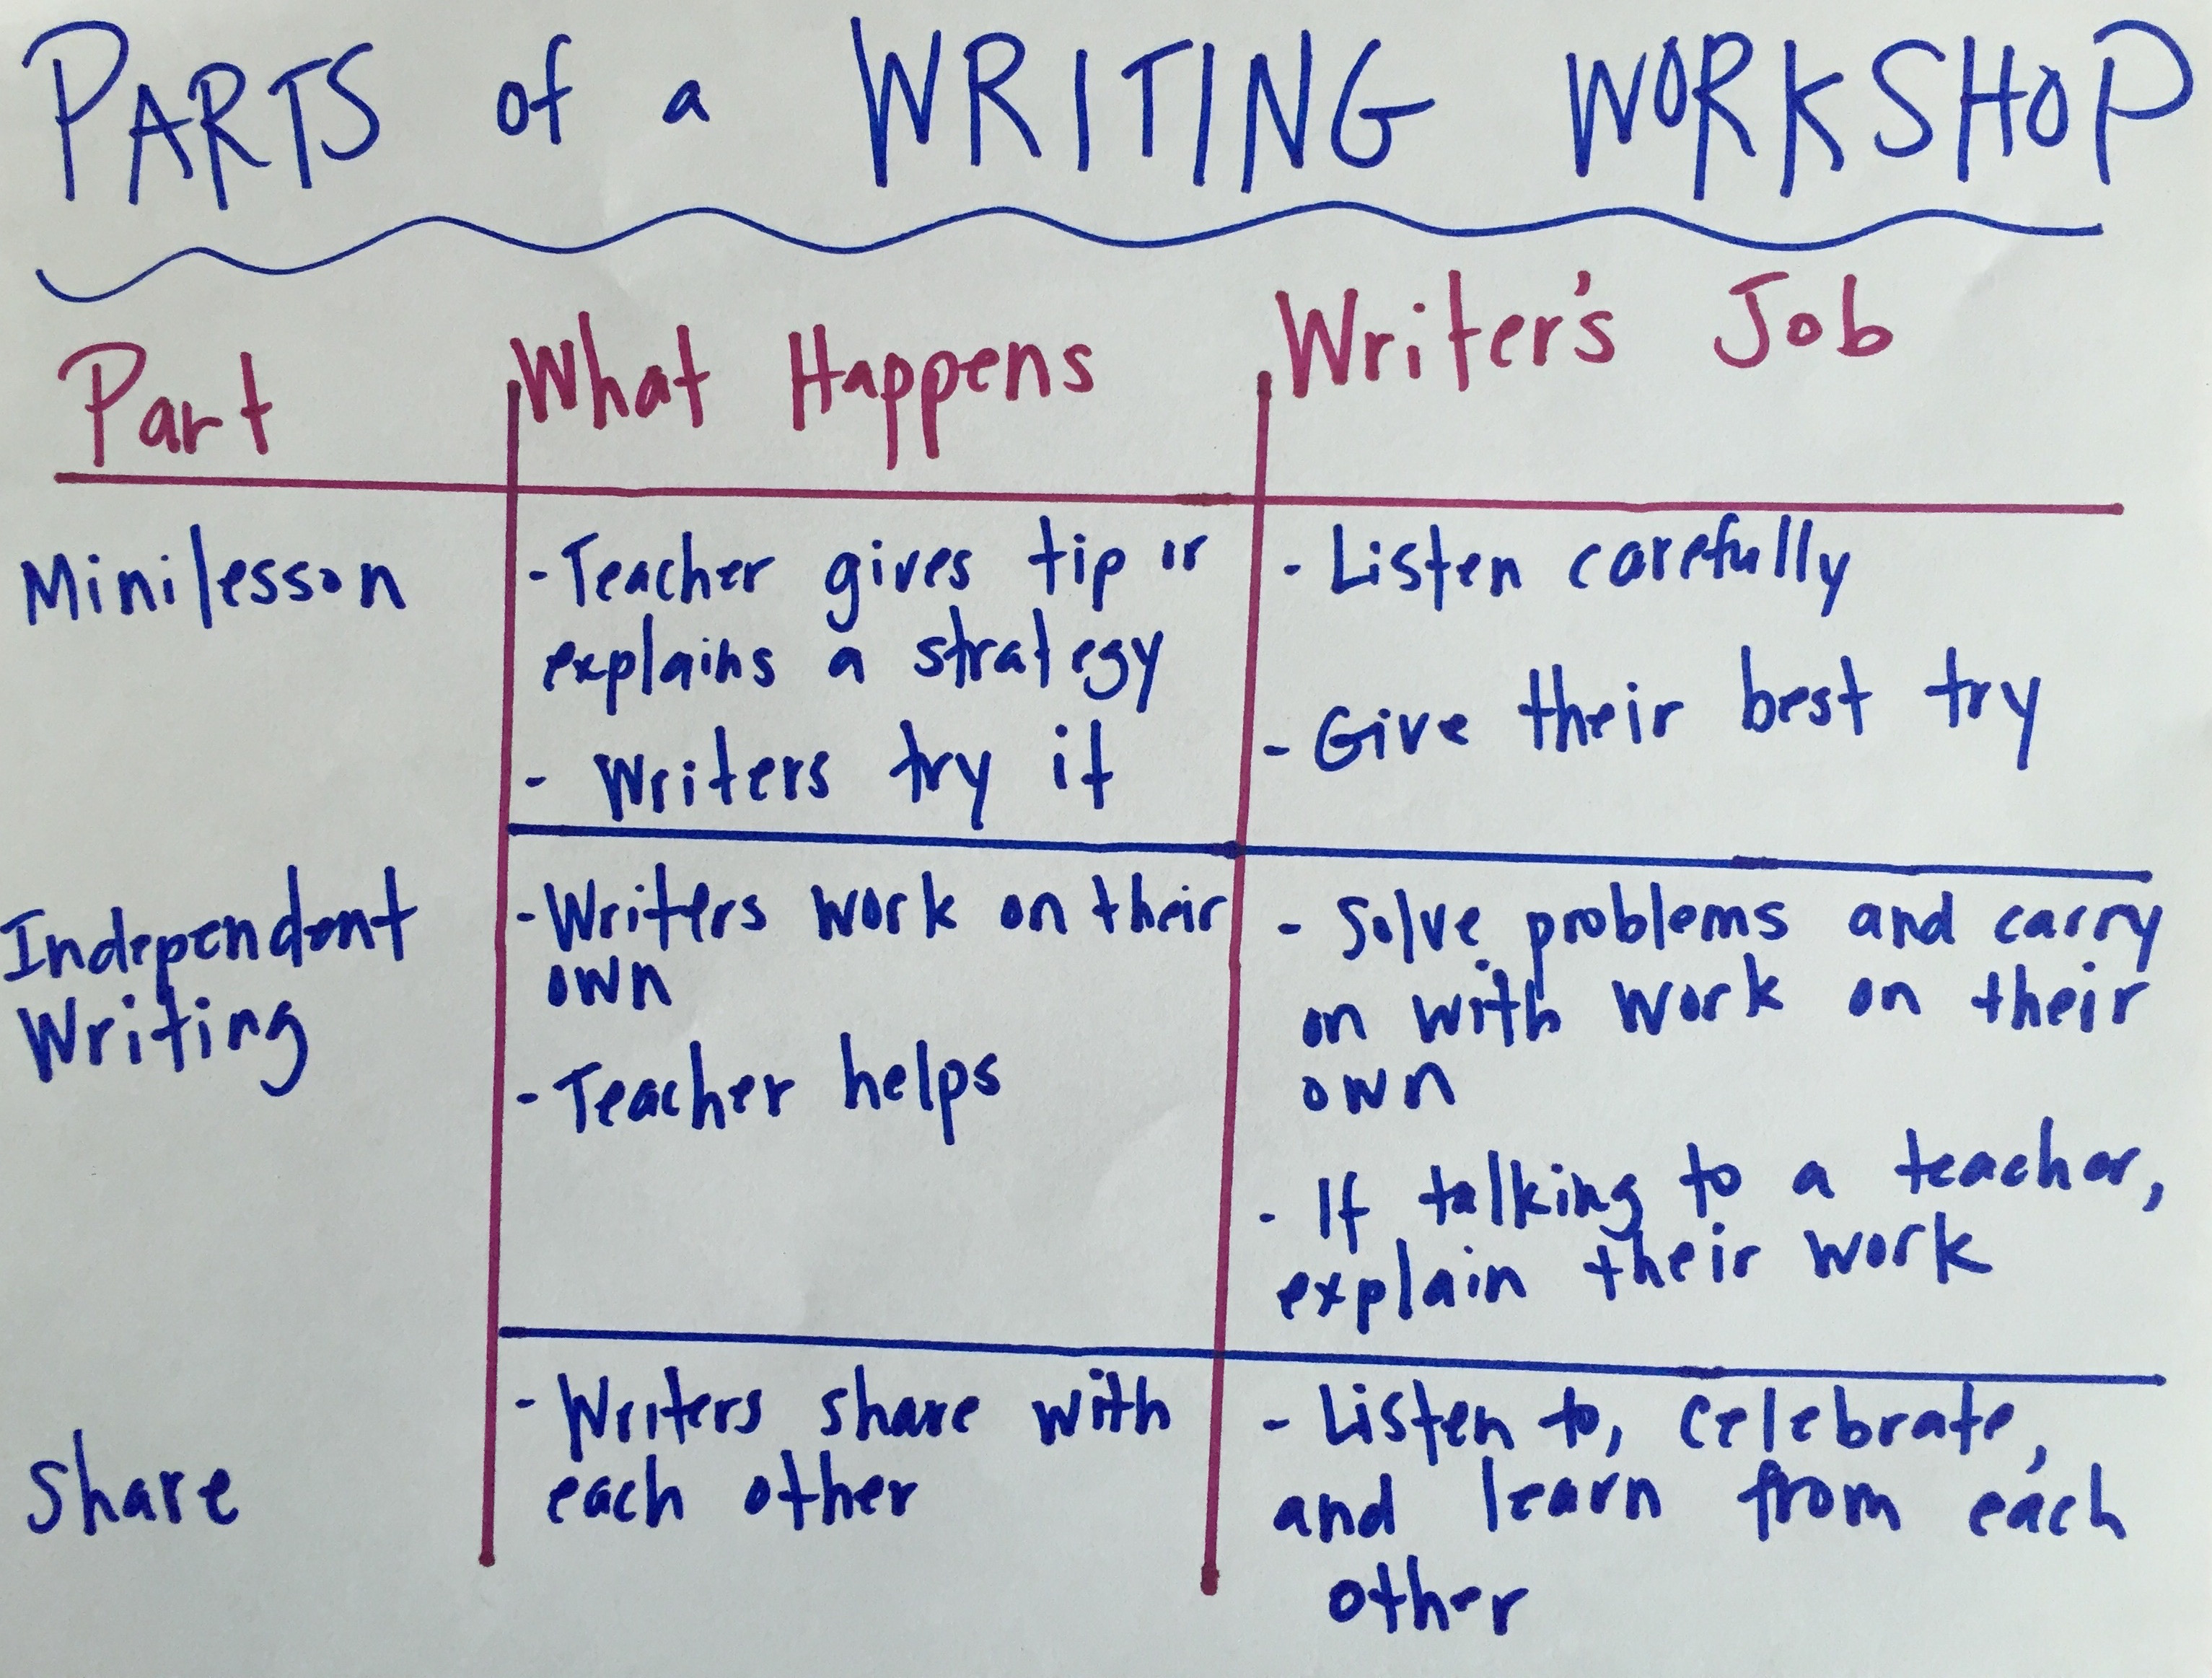 https://twowritingteachers.files.wordpress.com/2015/09/parts-of-a-ww-chart.jpg